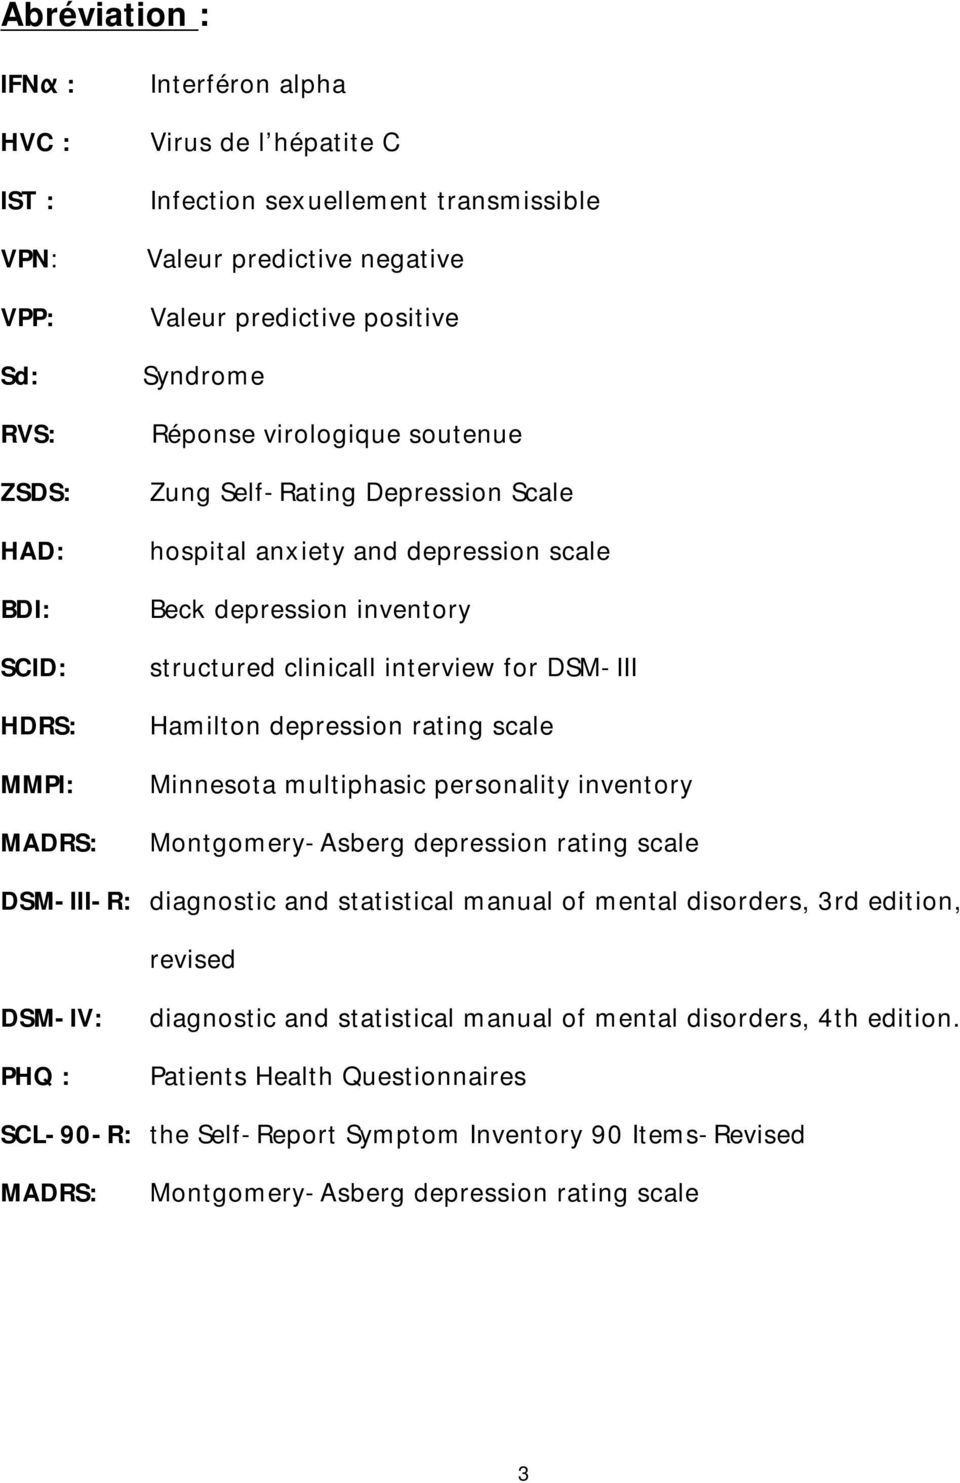 DSM-III Hamilton depression rating scale Minnesota multiphasic personality inventory Montgomery-Asberg depression rating scale DSM-III-R: diagnostic and statistical manual of mental disorders, 3rd